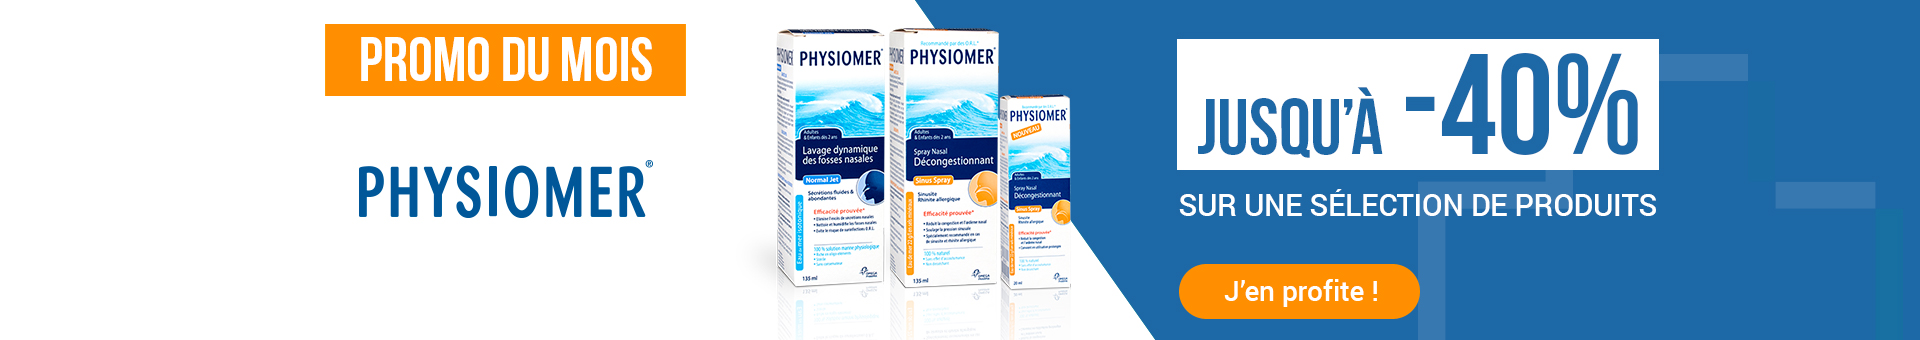 shop-pc-04-2020-physiomer-mobile-fr.jpg